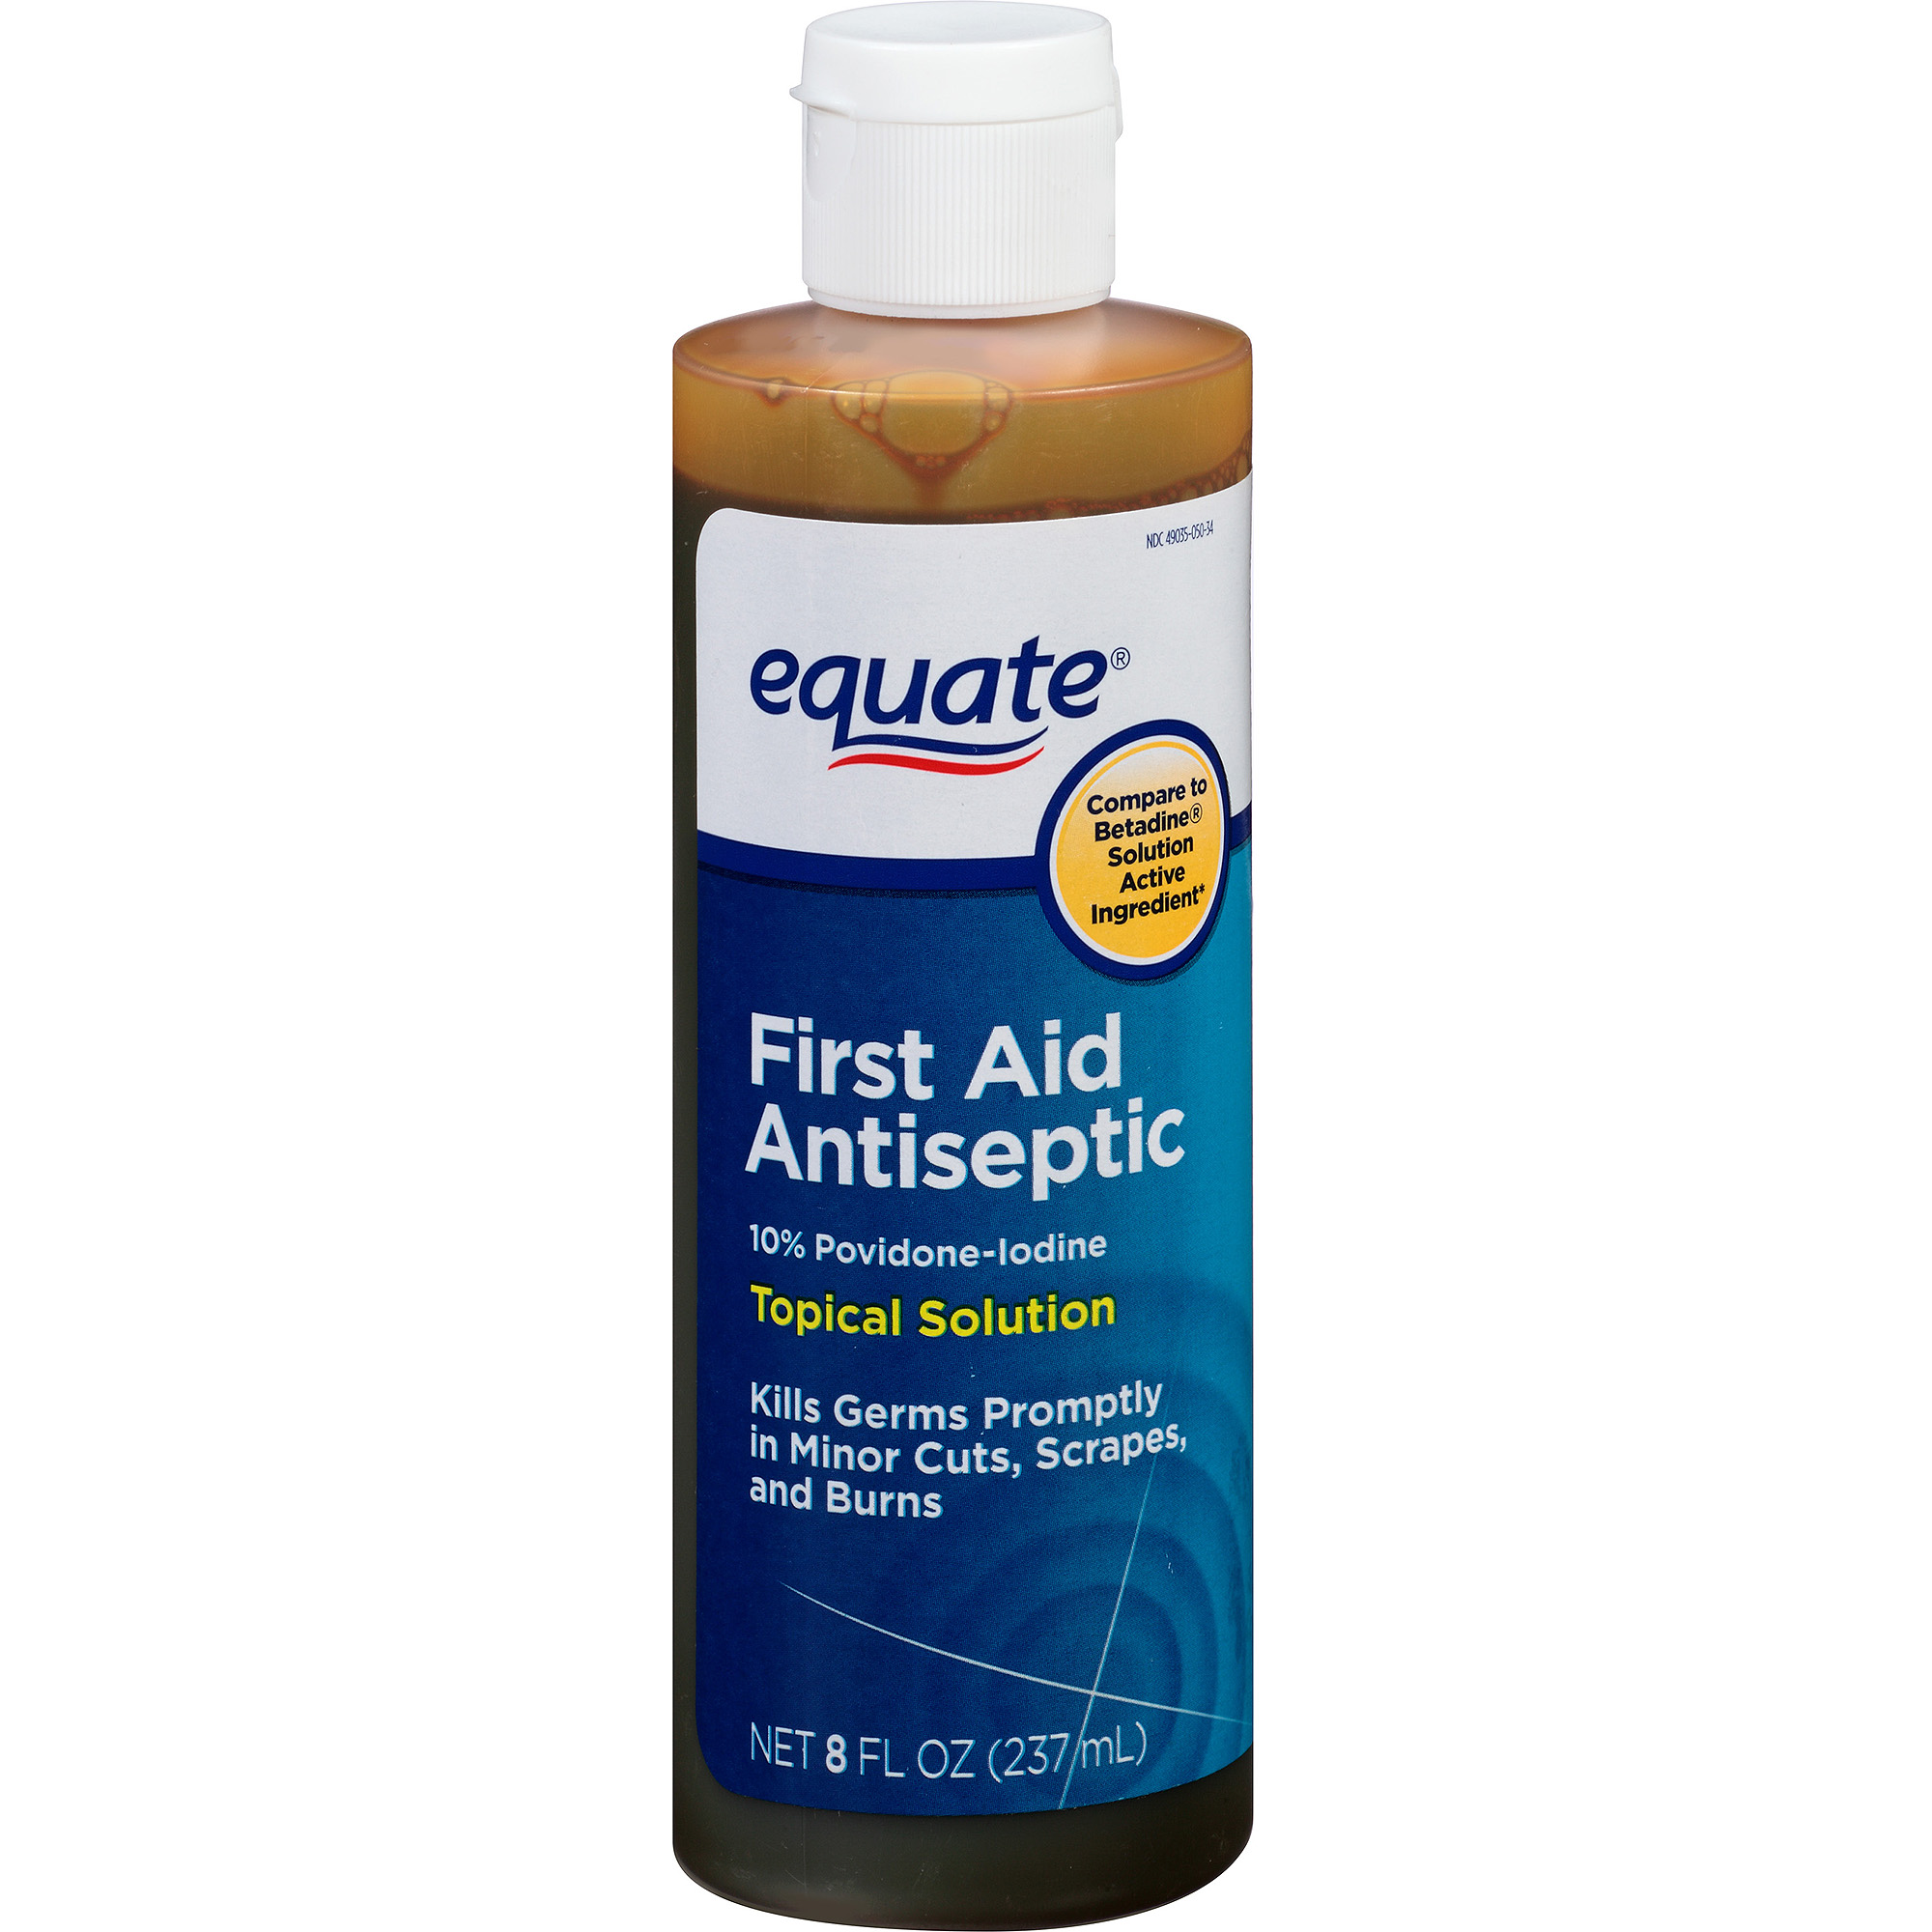 Antiseptic Solution Equate: povidone-iodine solution , 10% topical ...